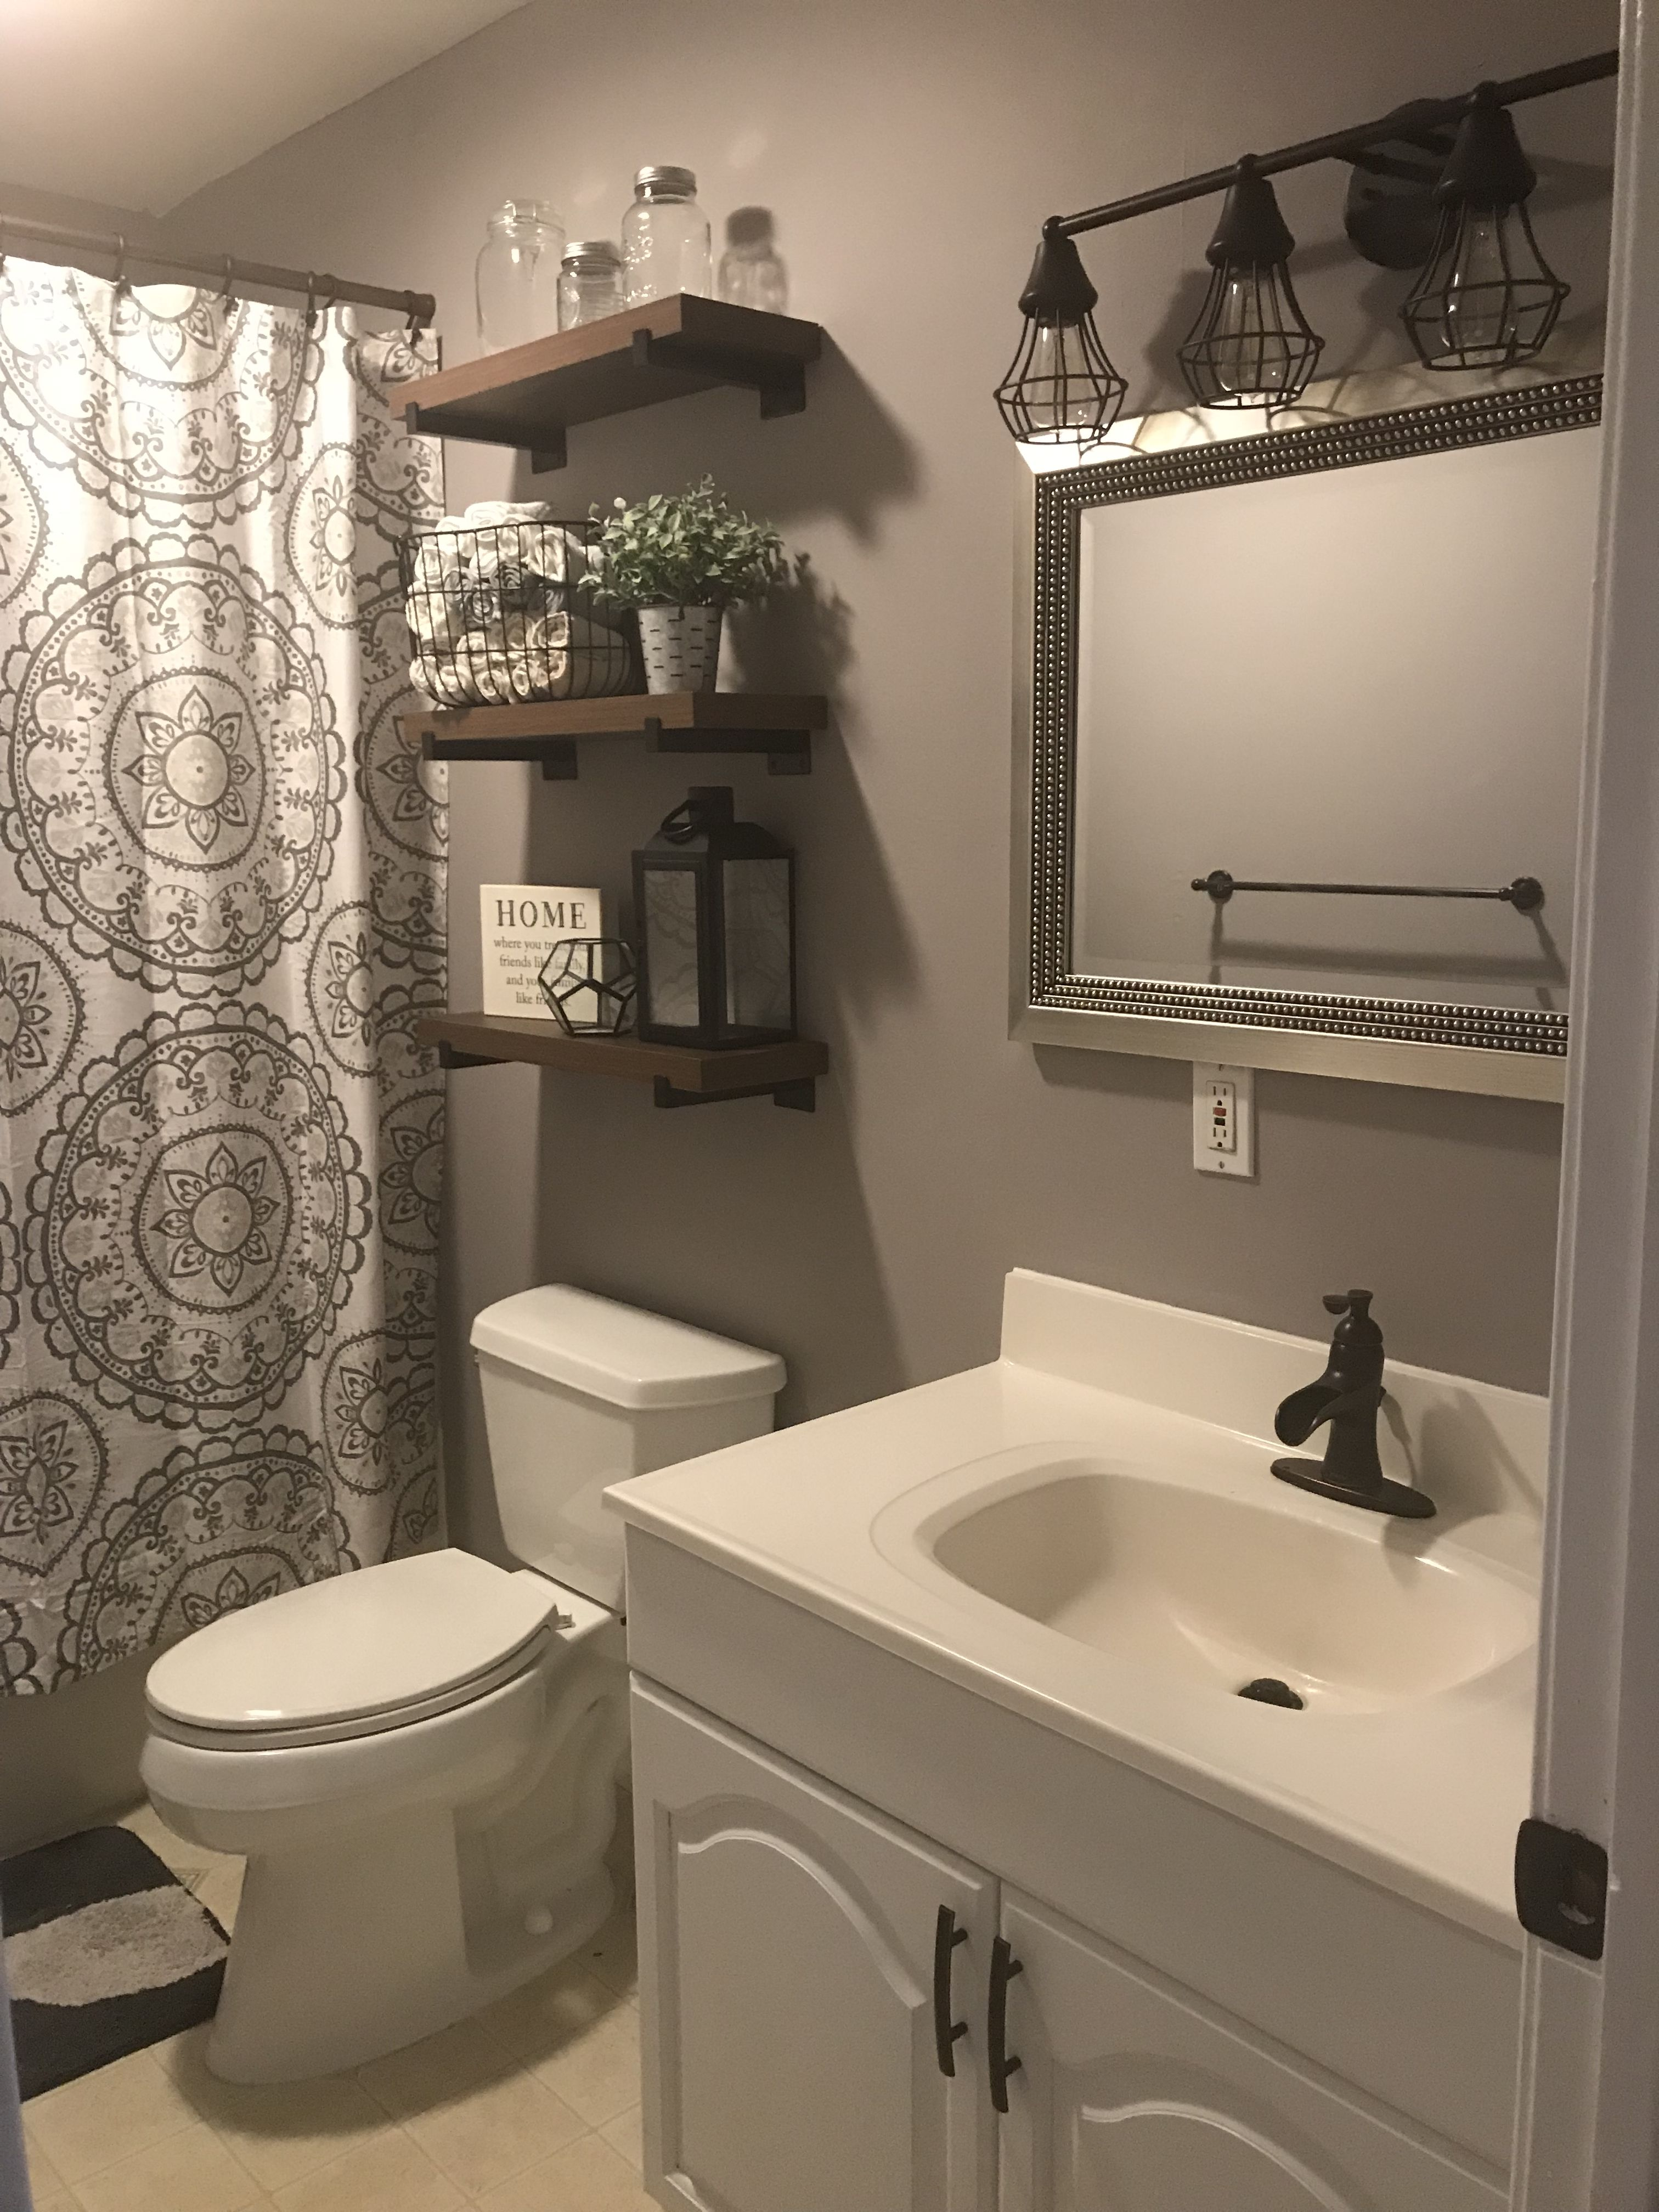 Our Updated Bathroom